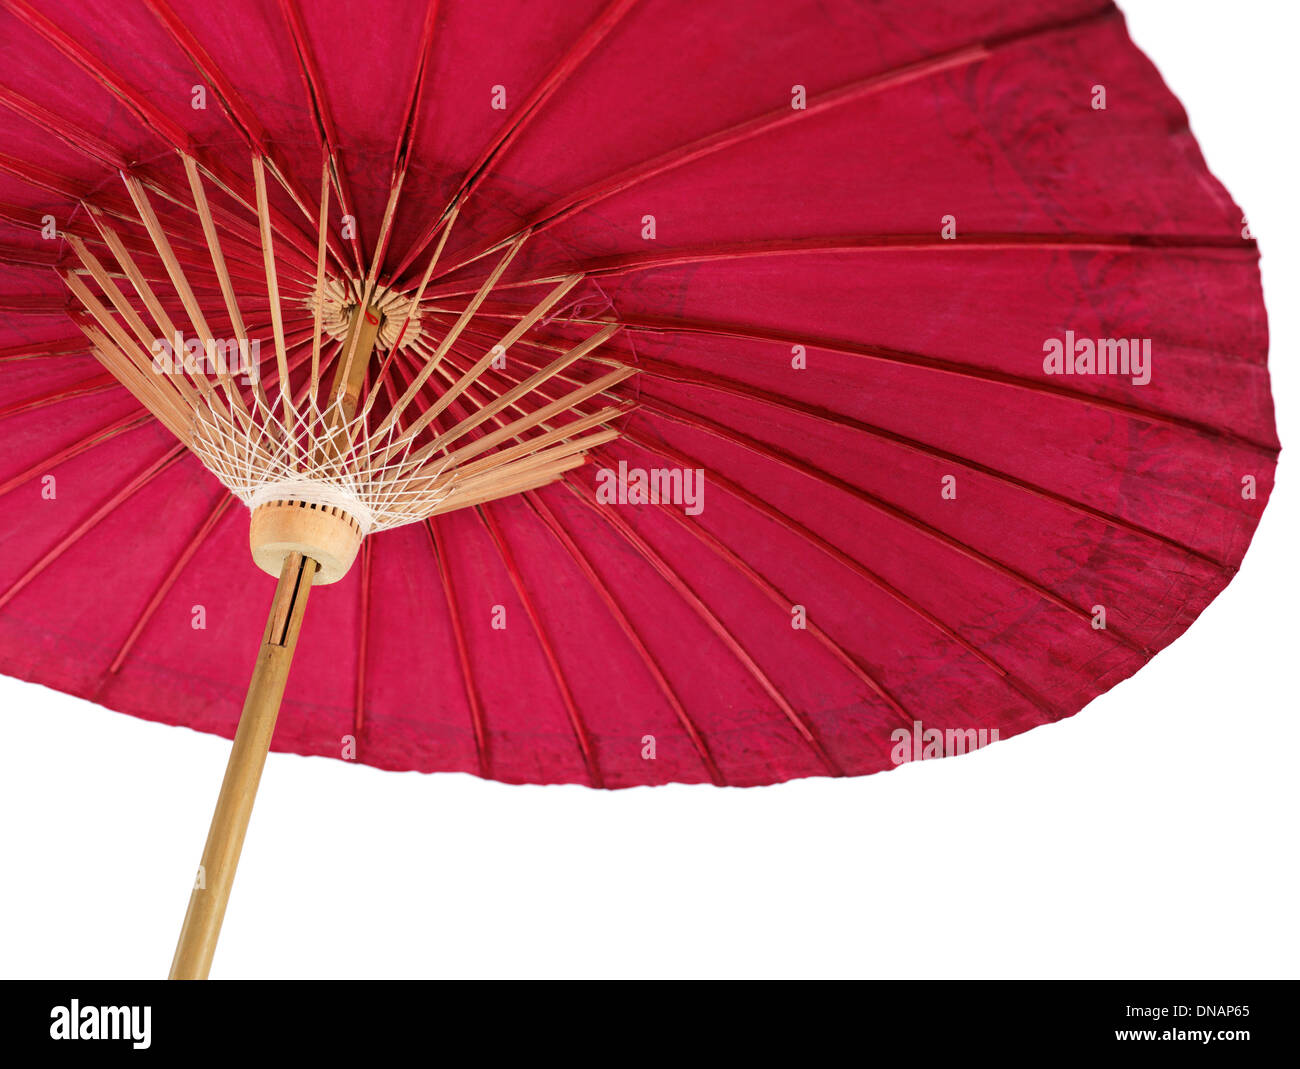 Red oriental paper umbrella, Japanese parasol isolated on white background - Stock Image